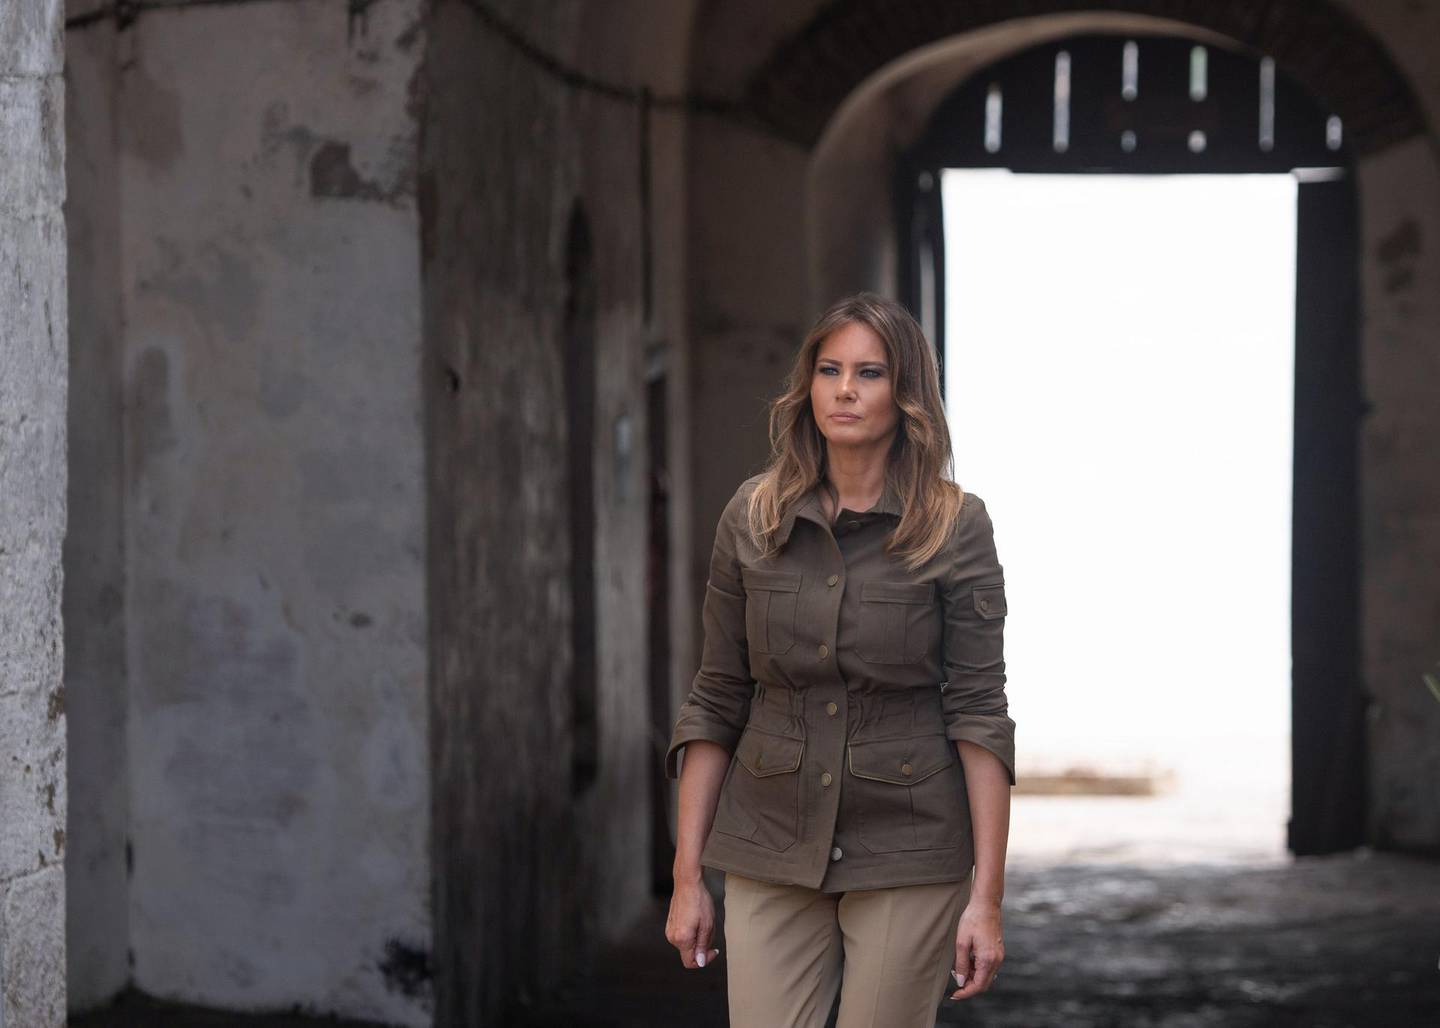 US First Lady Melania Trump walk through the Door of No Return (where slaves were loaded onto ships and sold in the Americas) as she tours the Cape Coast Castle, a former slave trading fort, in Cape Coast, Ghana, on October 3, 2018. US First Lady Melania Trump is on a solo tour of Africa to promote her children's welfare programme. / AFP / SAUL LOEB